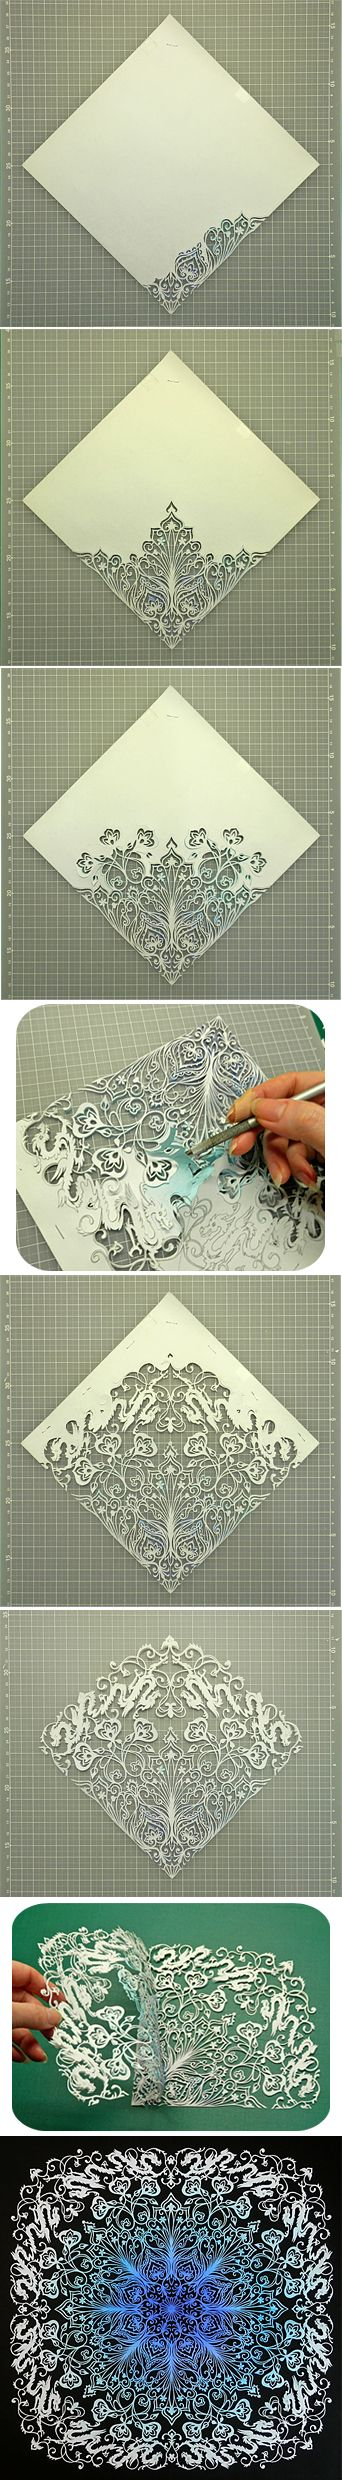 Japanese Kirigami Art(Cut Paper). by Syandery.